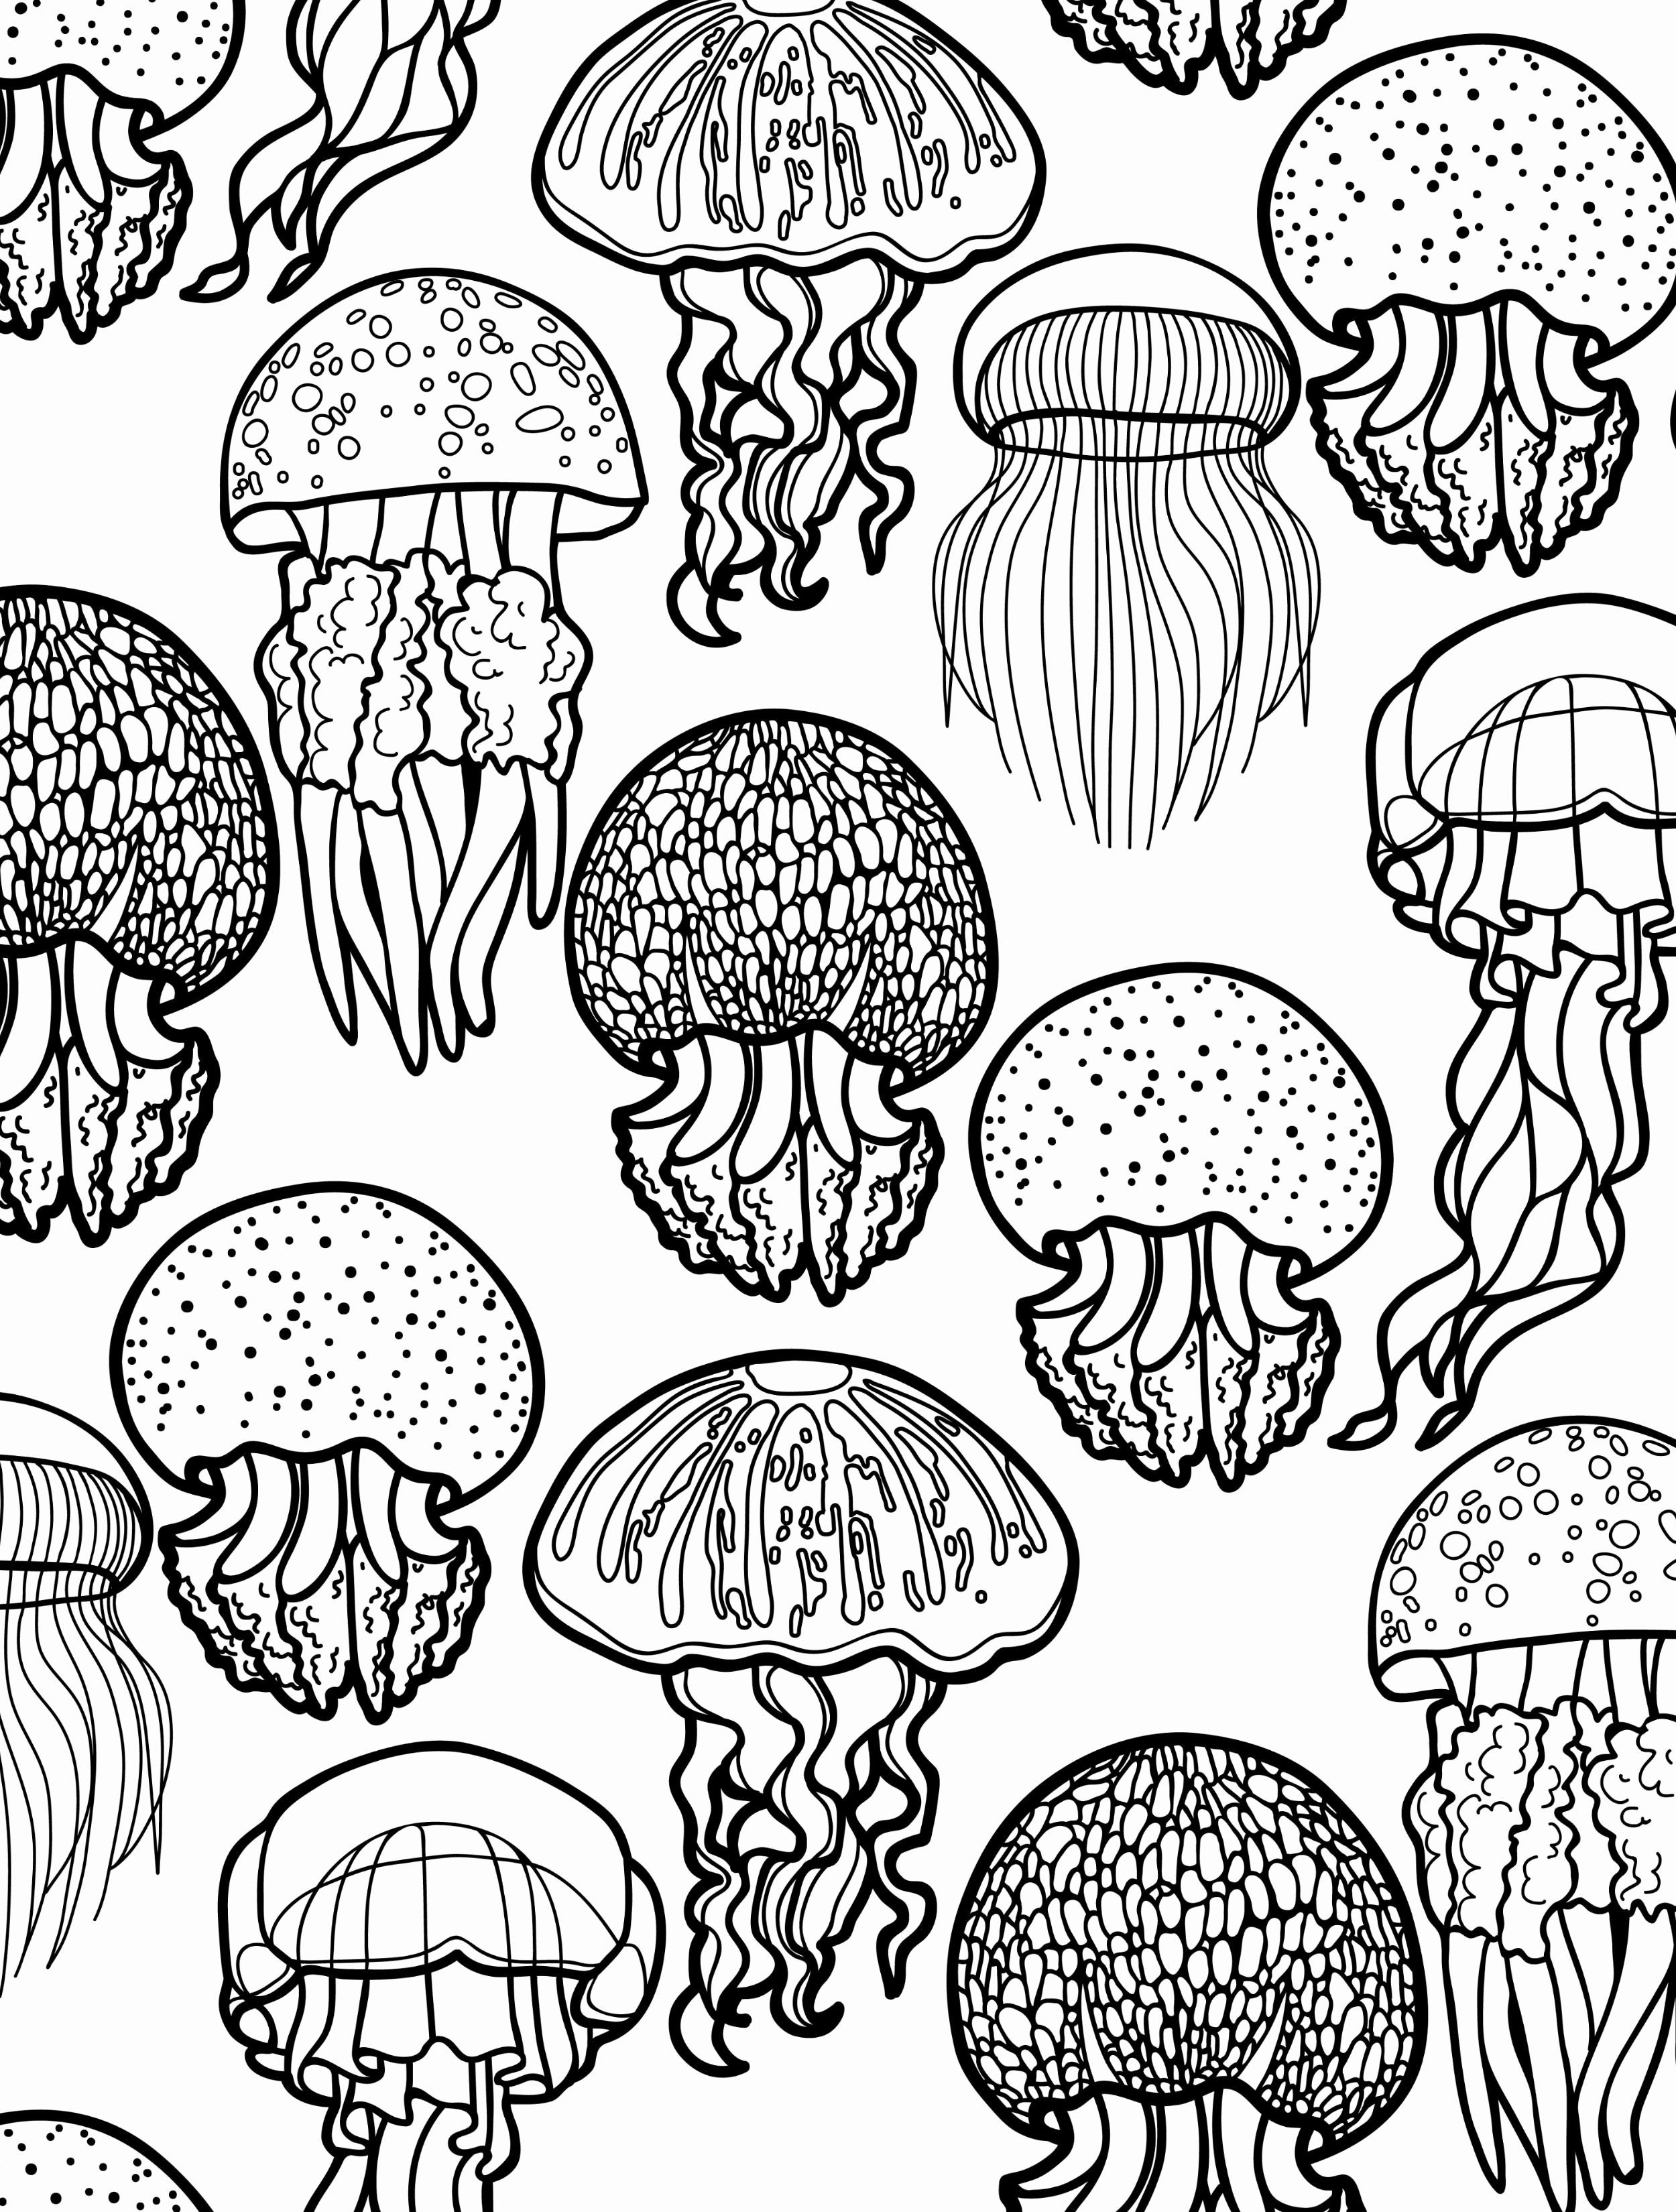 Free Online Adult Coloring Pages in 2020 | Animal coloring ...